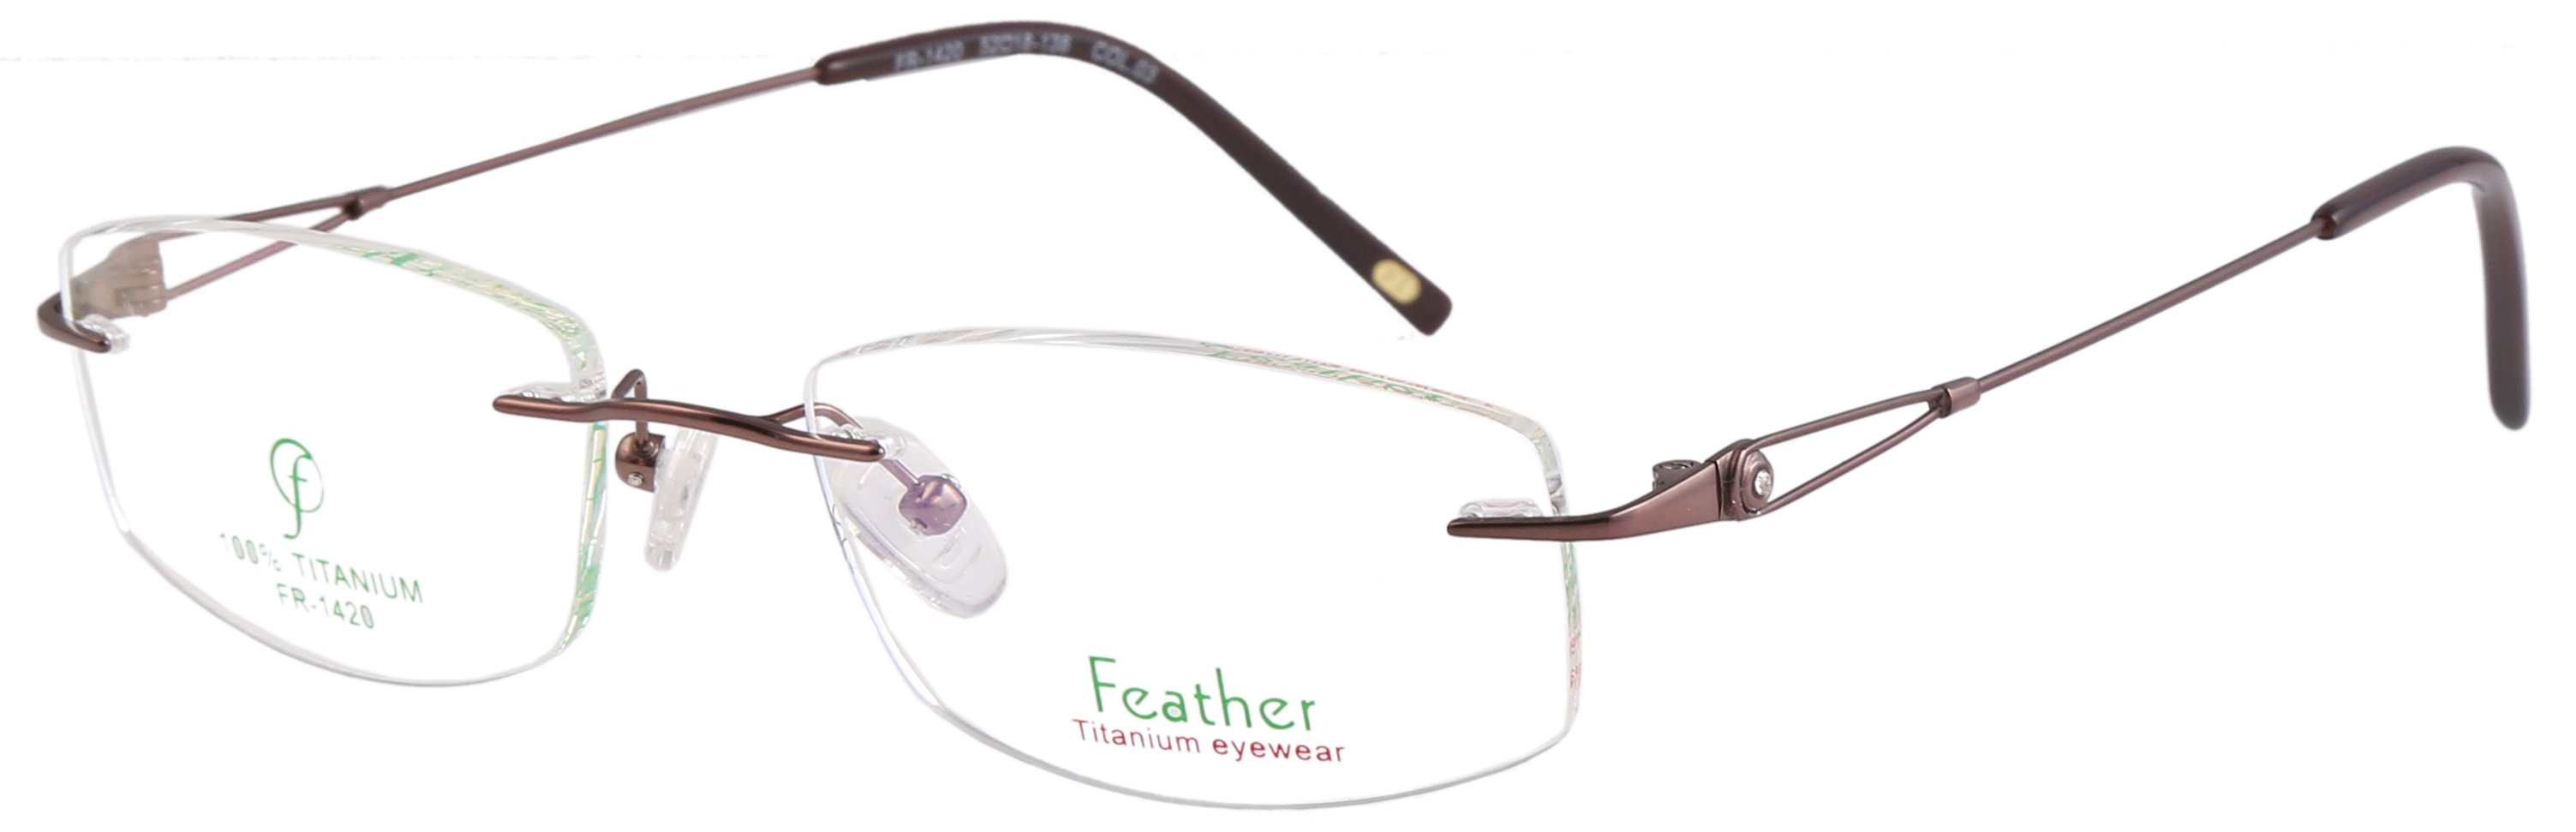 Feather Model No FR-1420